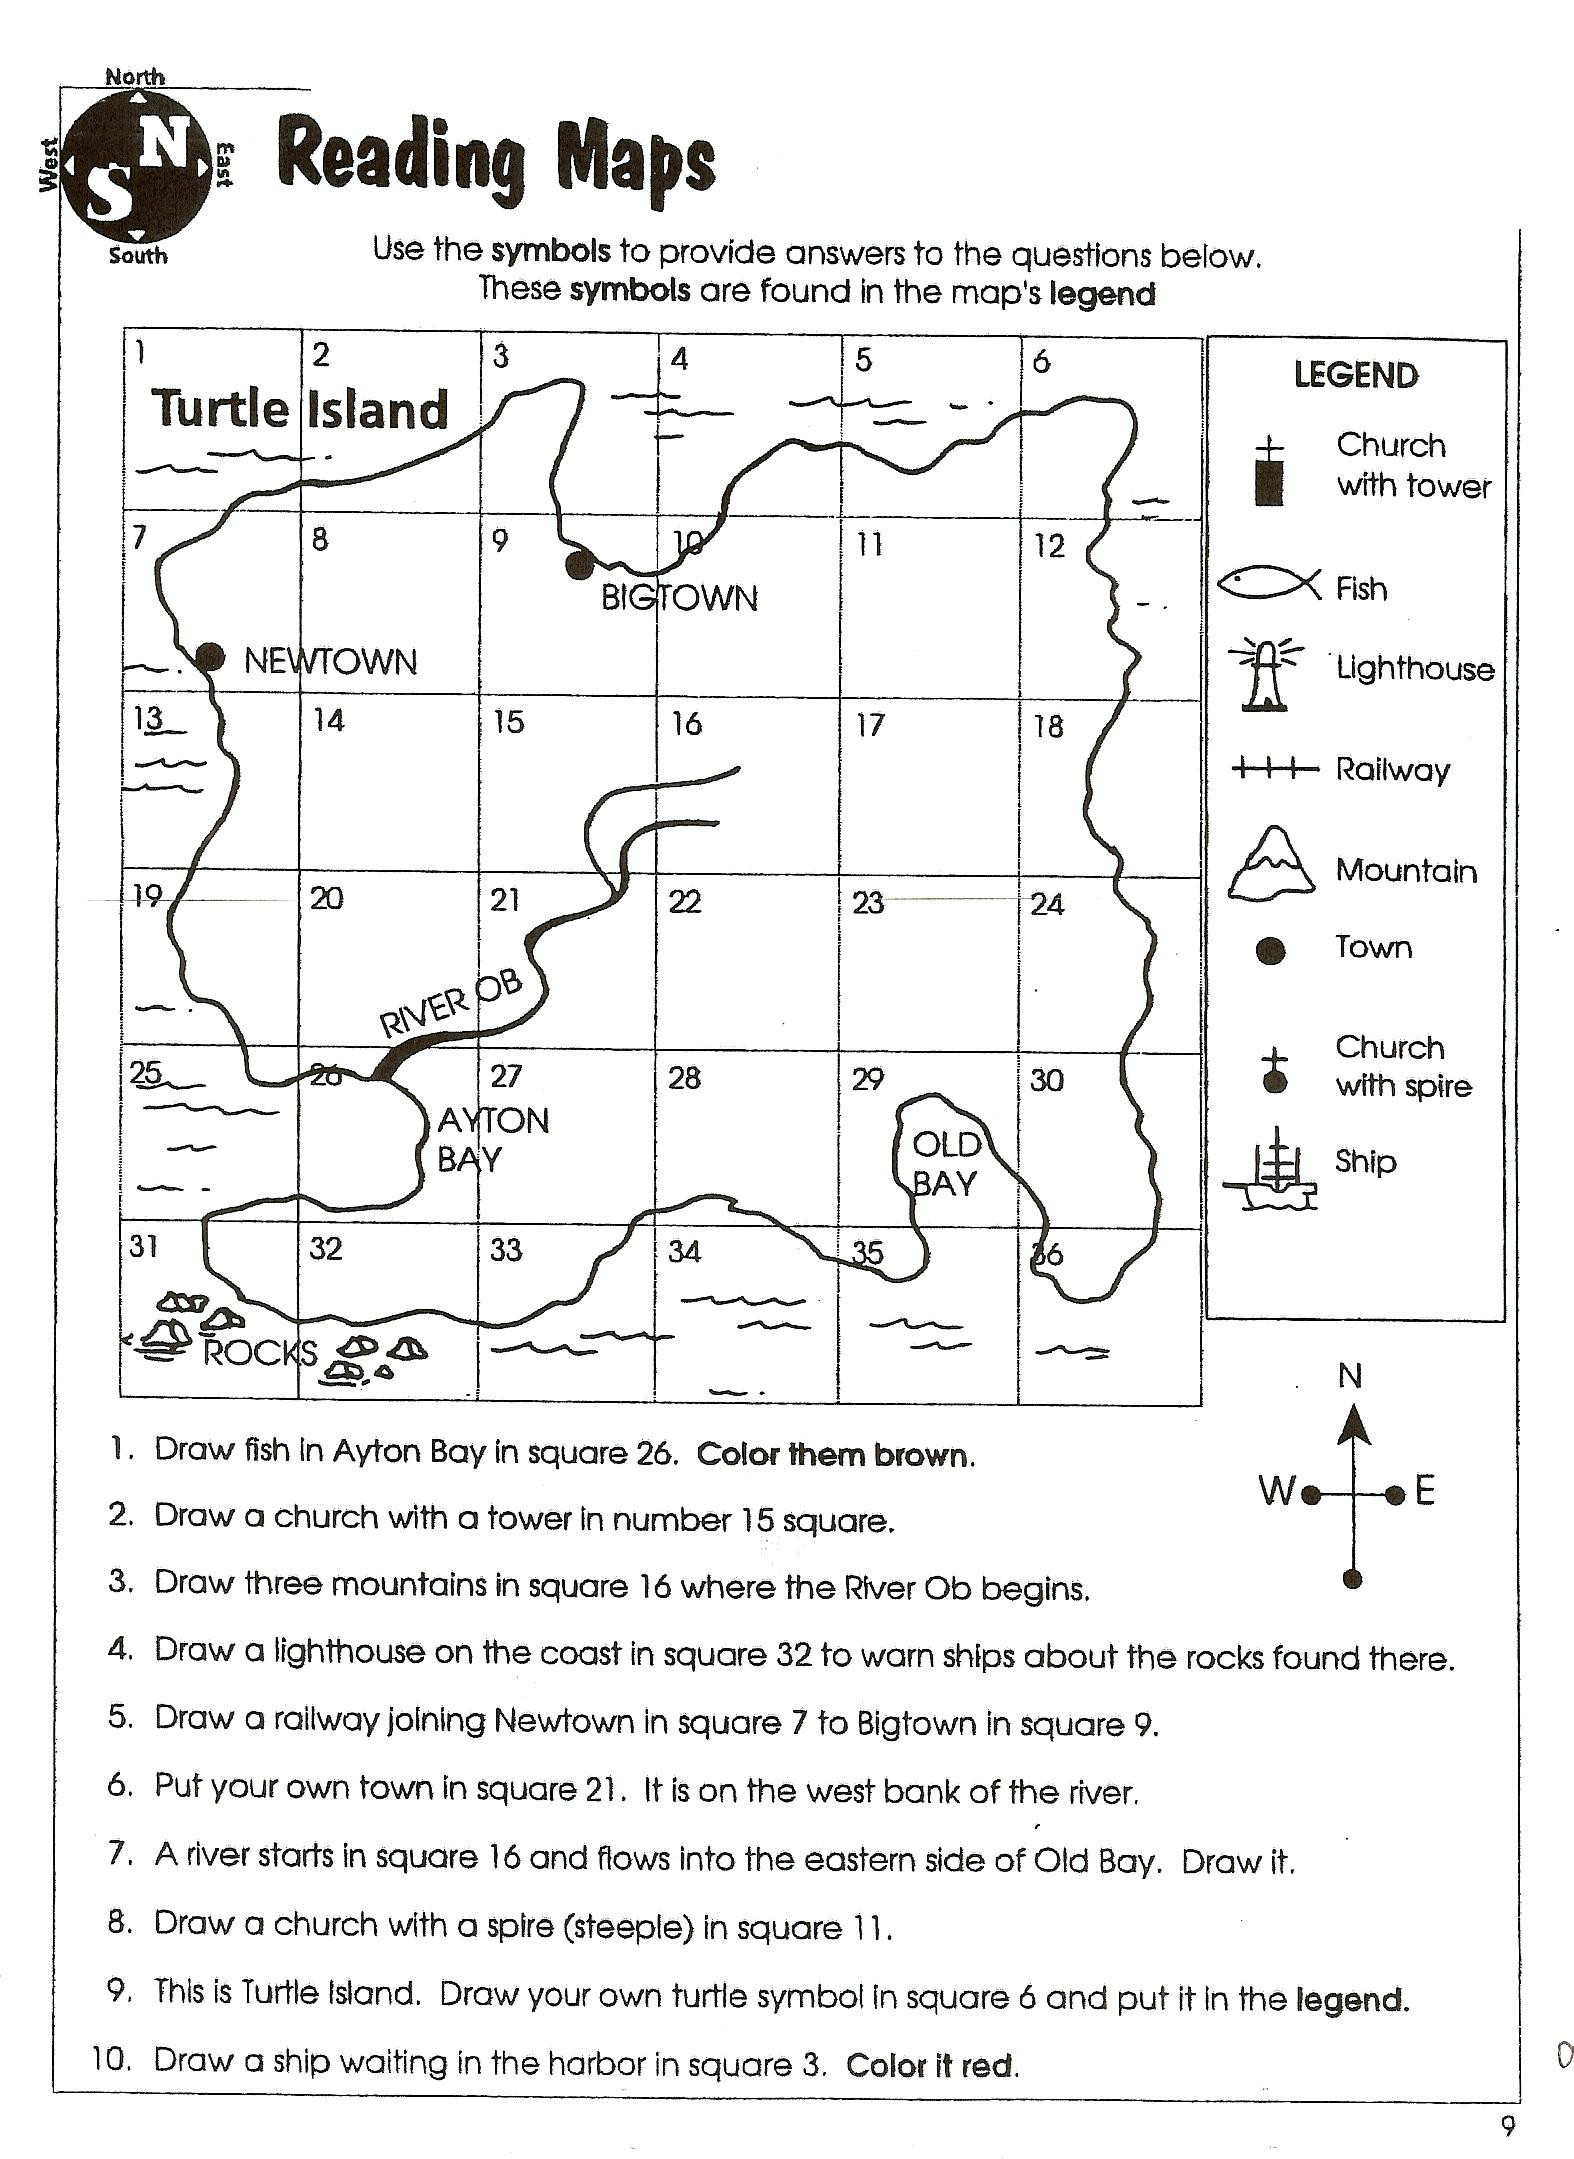 Map Skills Worksheets 6th Grade social Stu S Mapping Grade social Stu S Curriculum Map